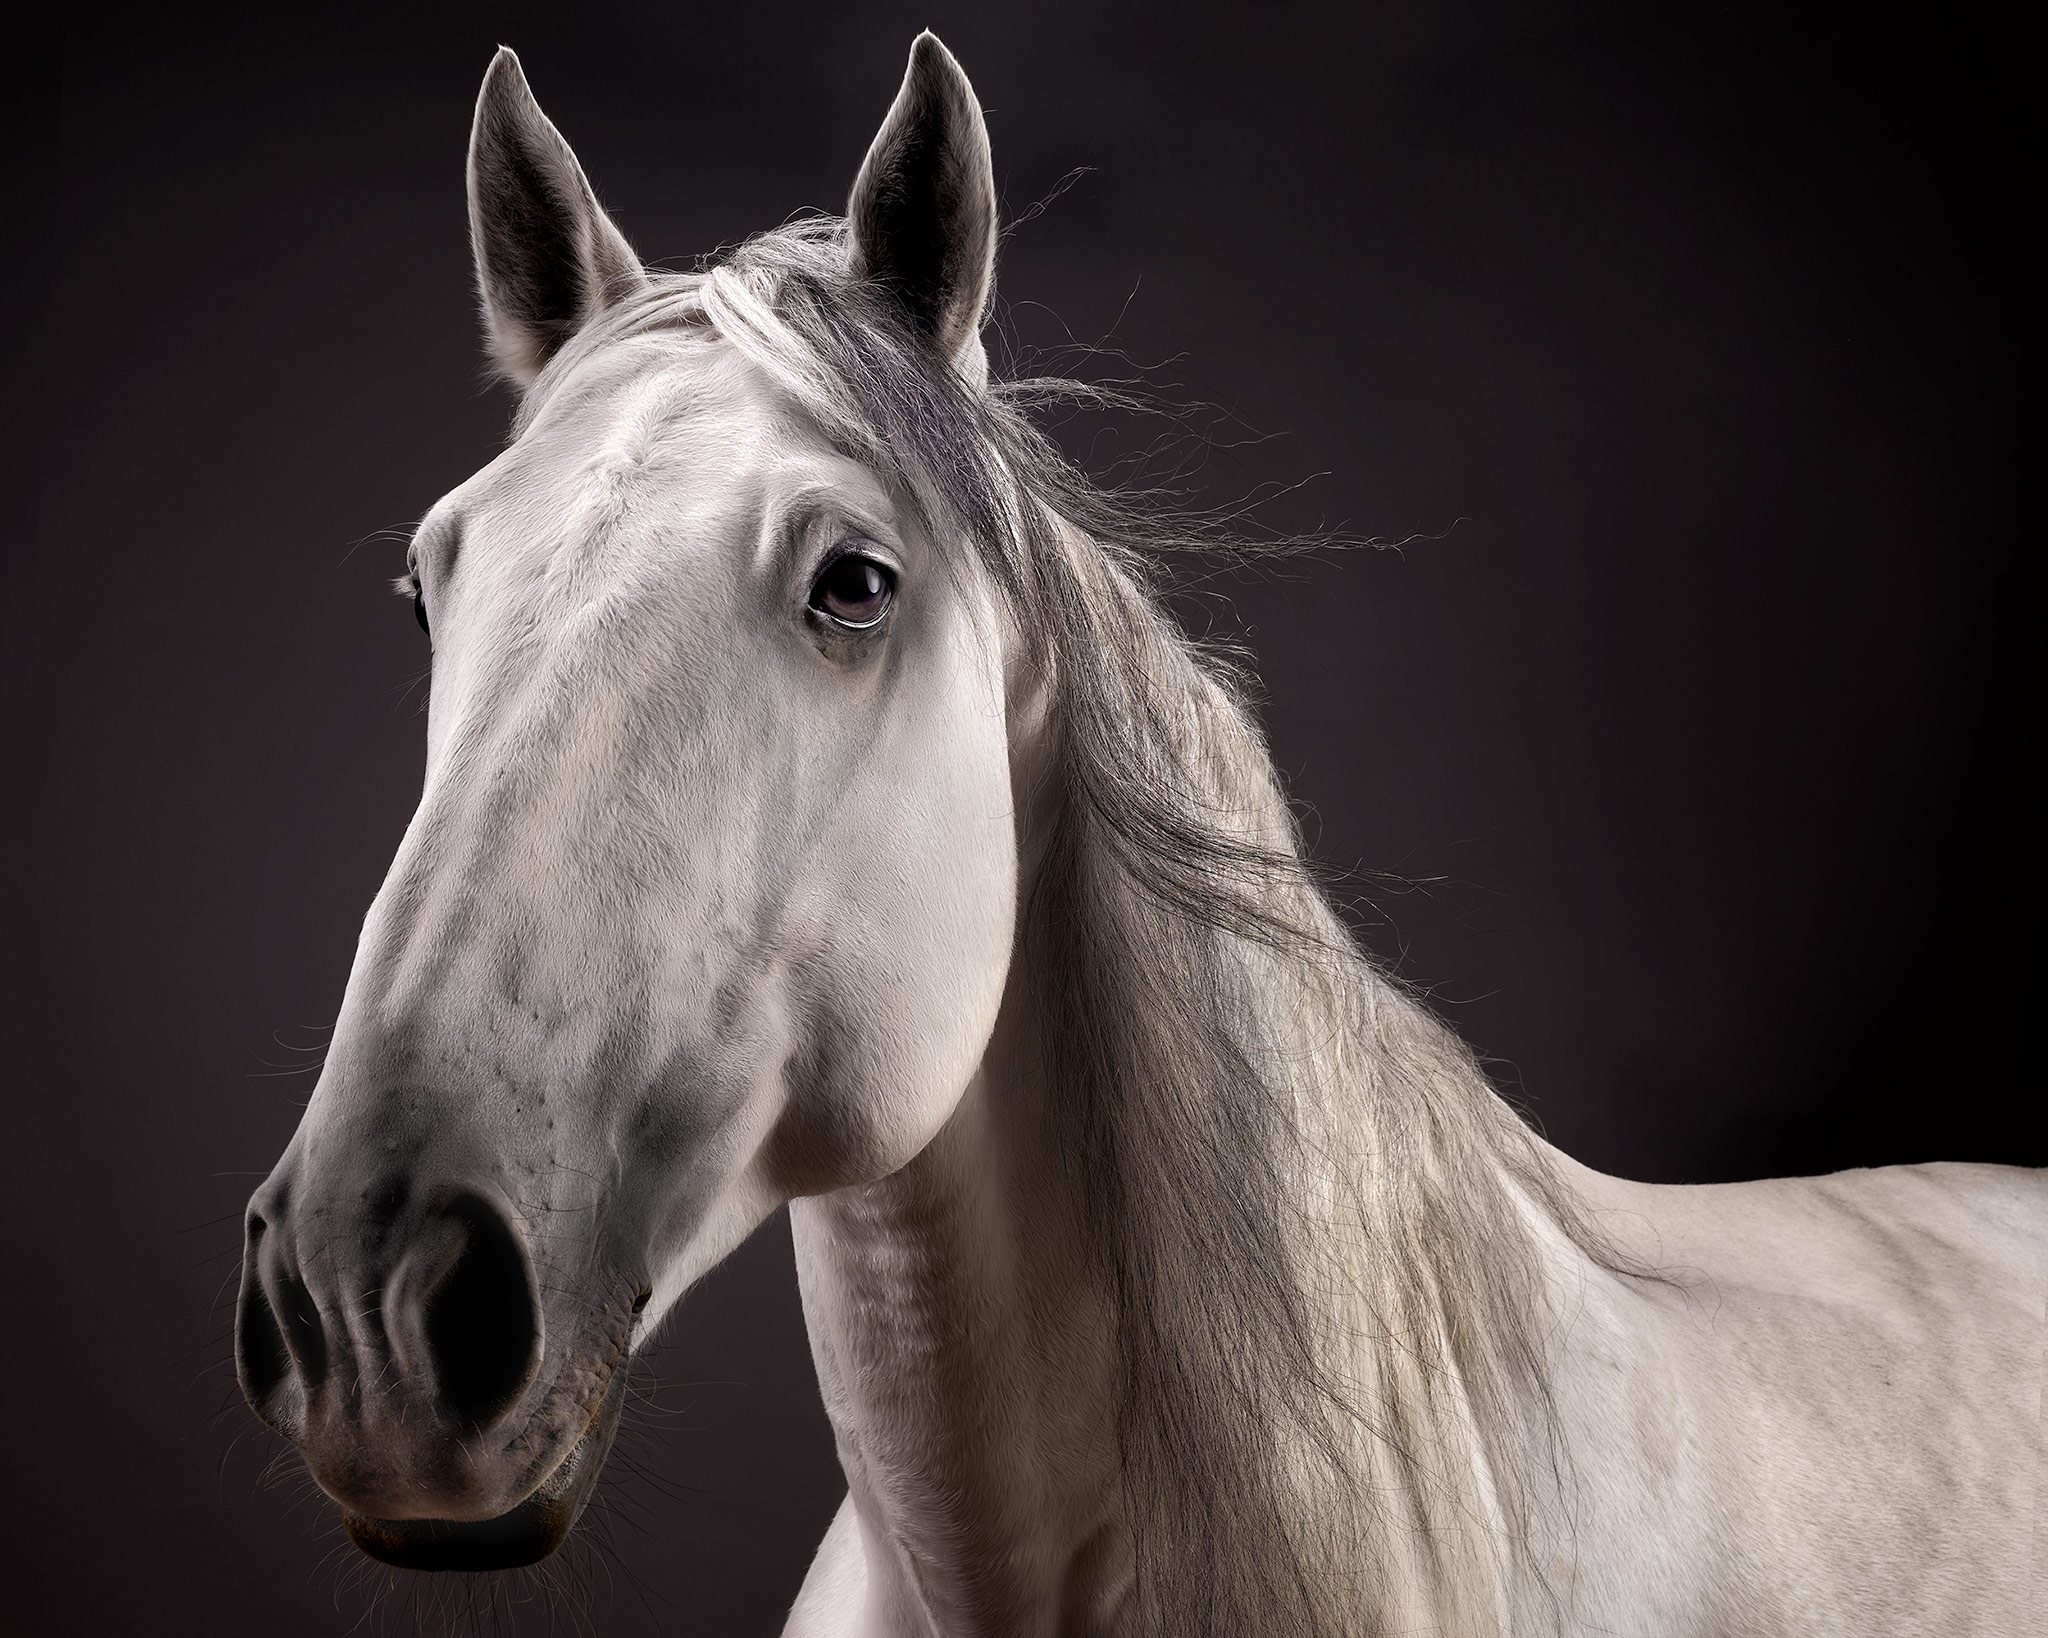 Braseiro-Lusitano-Stallion-Grey-Horse-Fine-Art-Photography